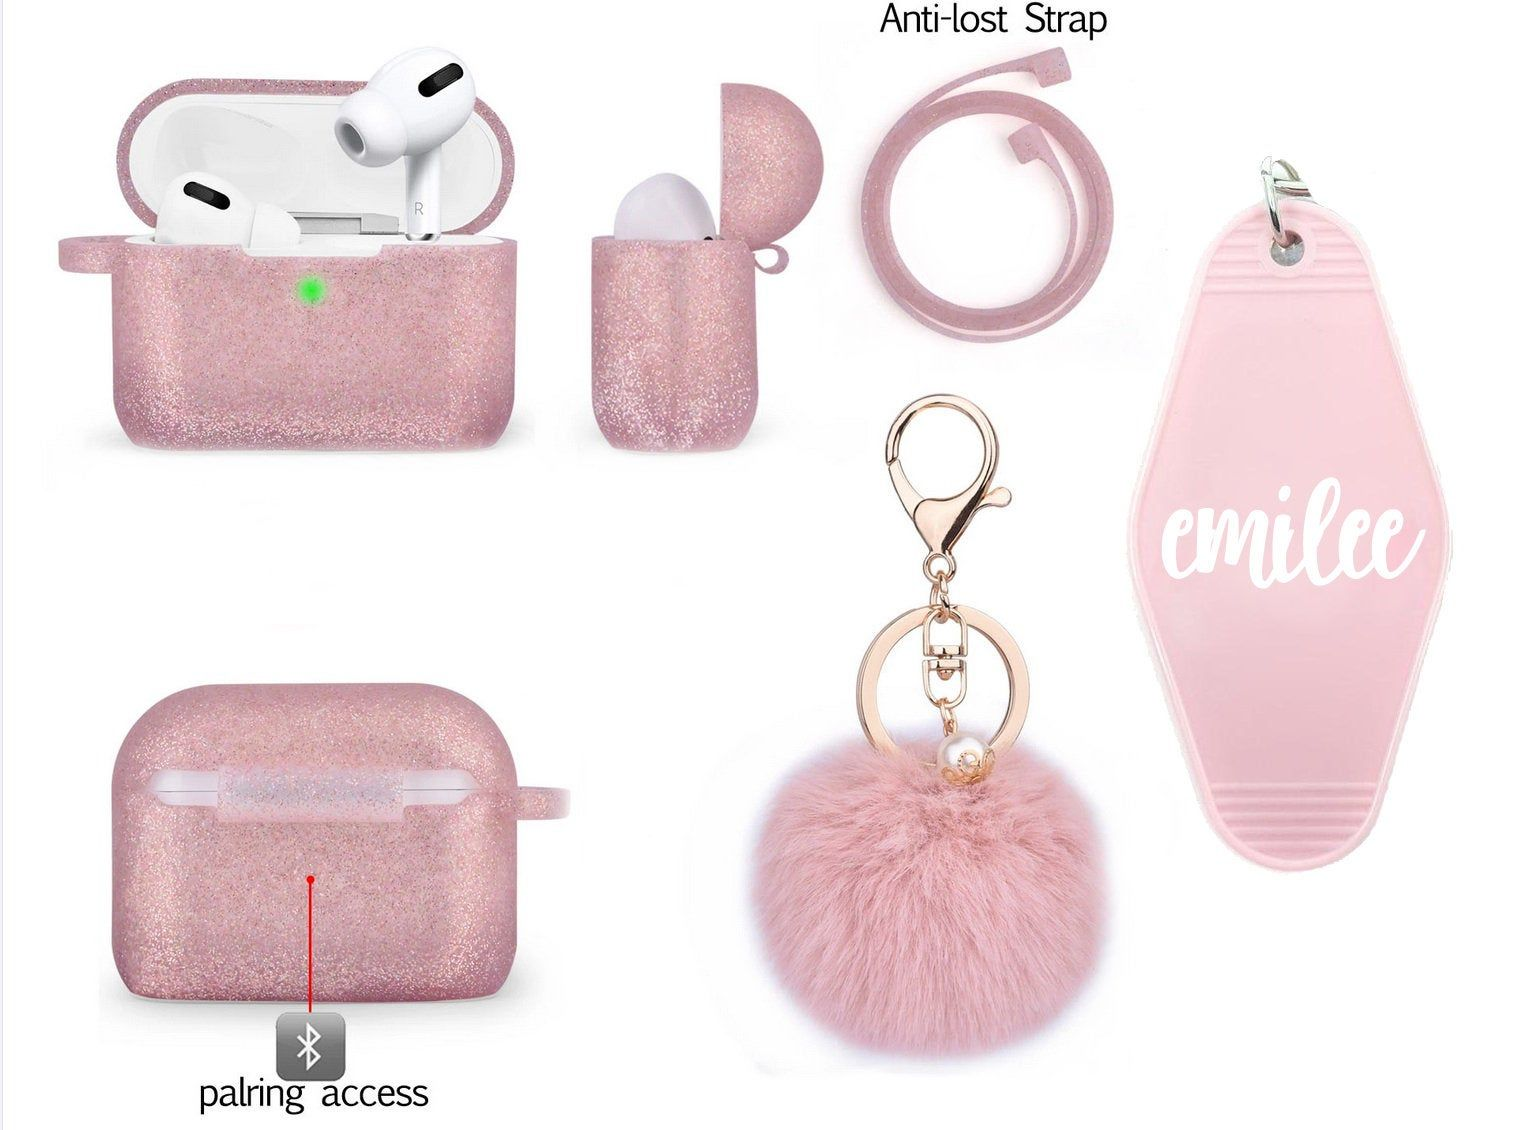 Airpods pro case with keychain for airpod pro cute etsy